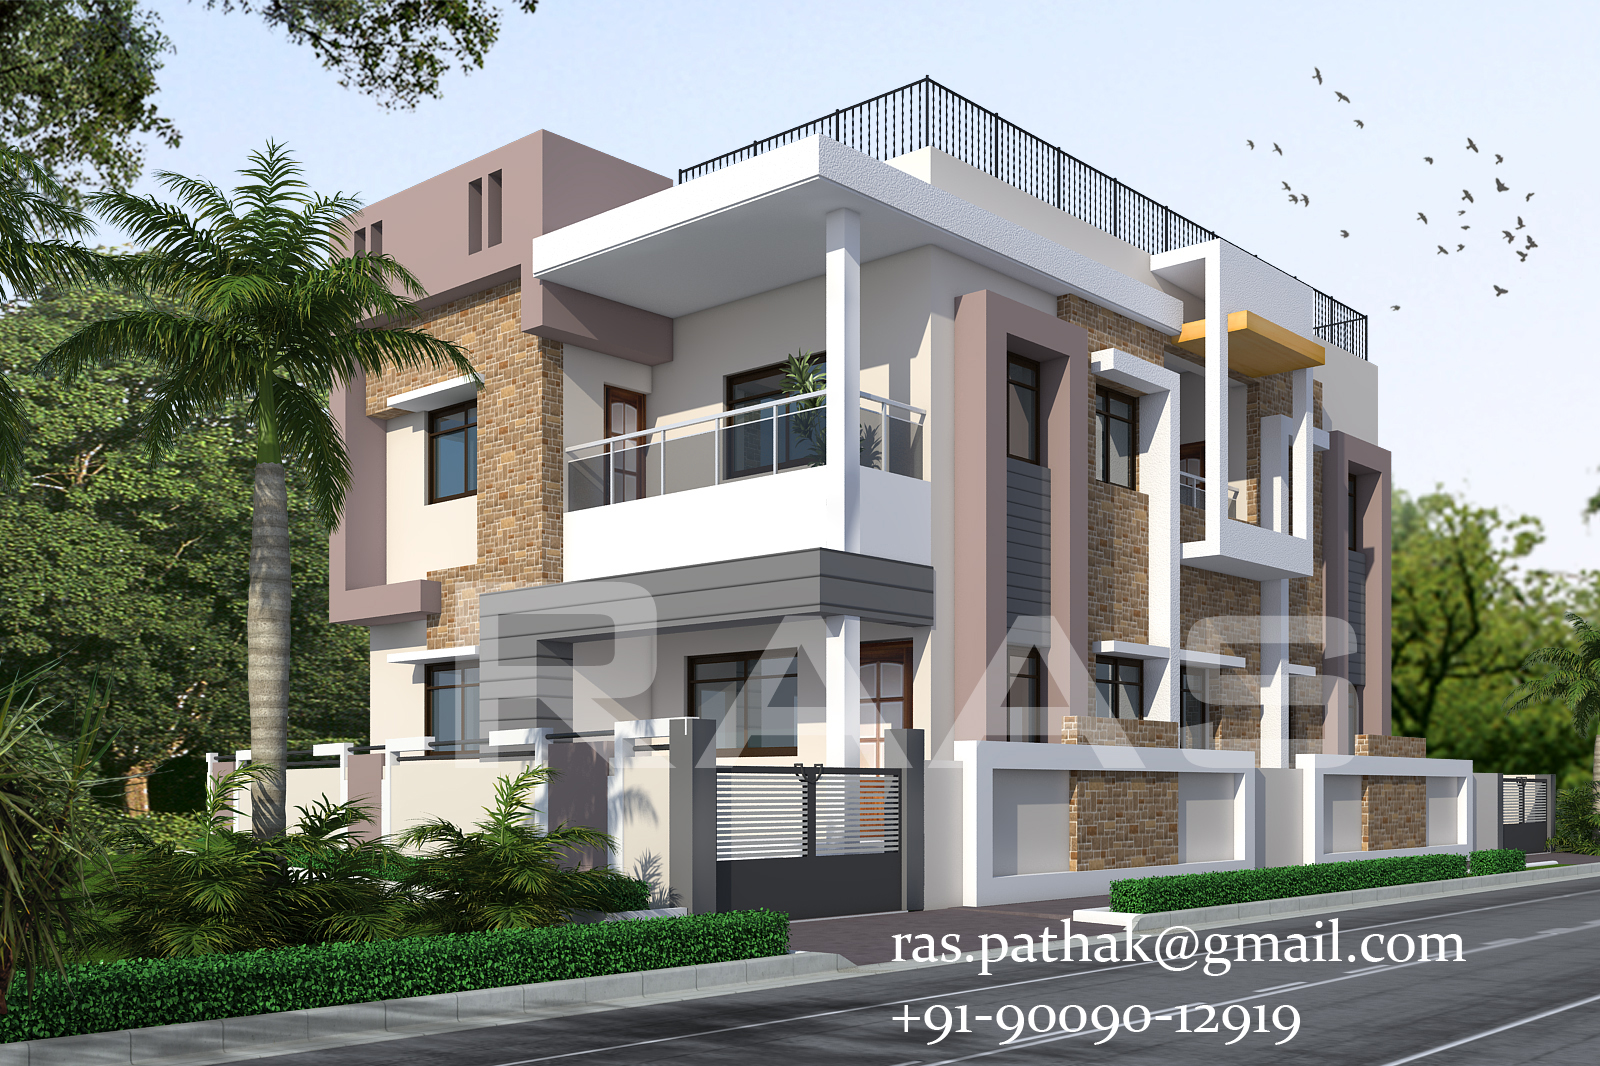 3d architectural rendering service in india for Exterior 3d rendering